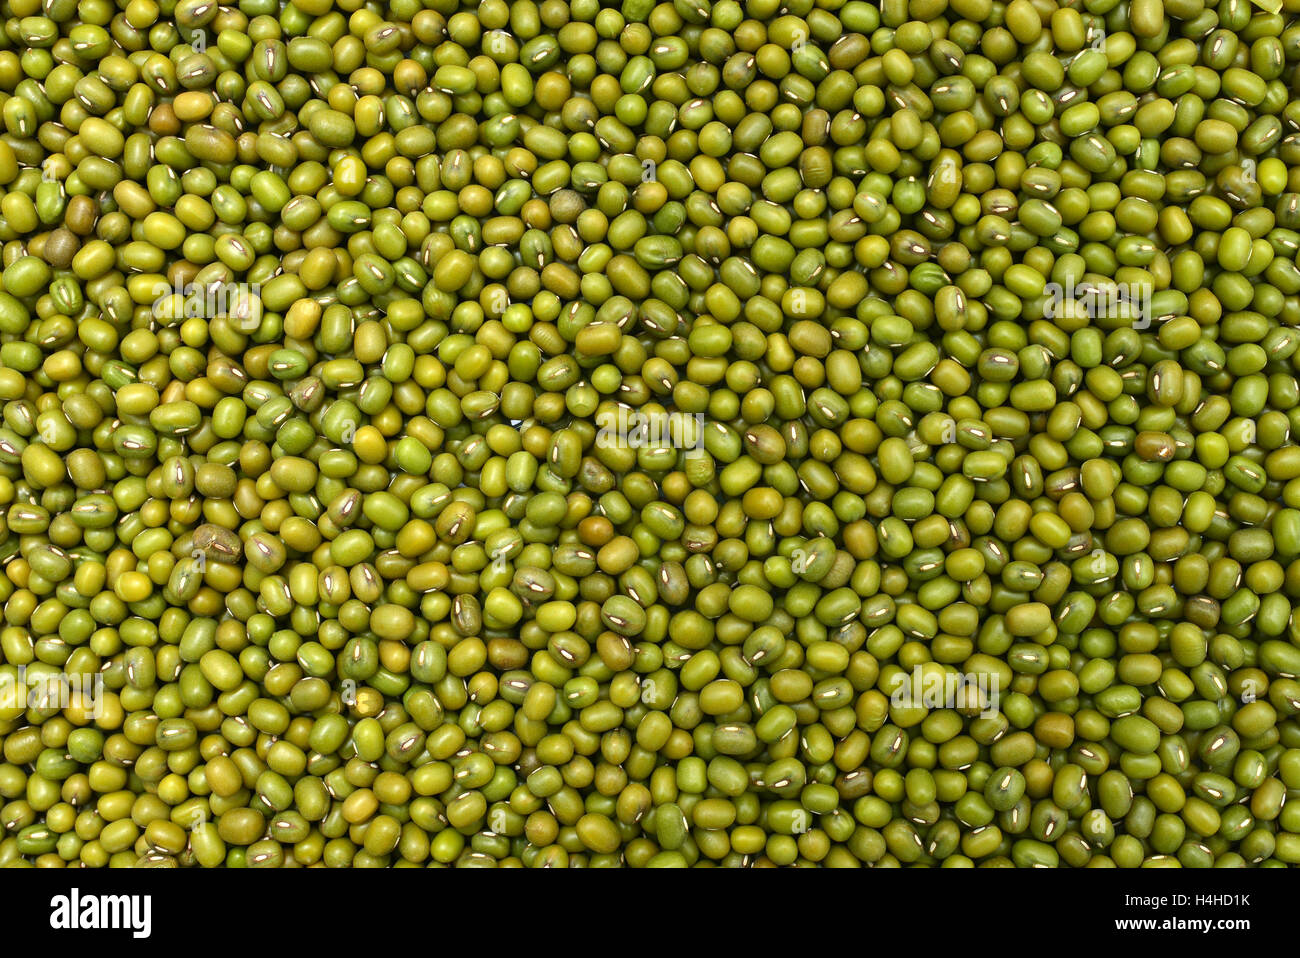 mung green beans texture pattern food background - Stock Image